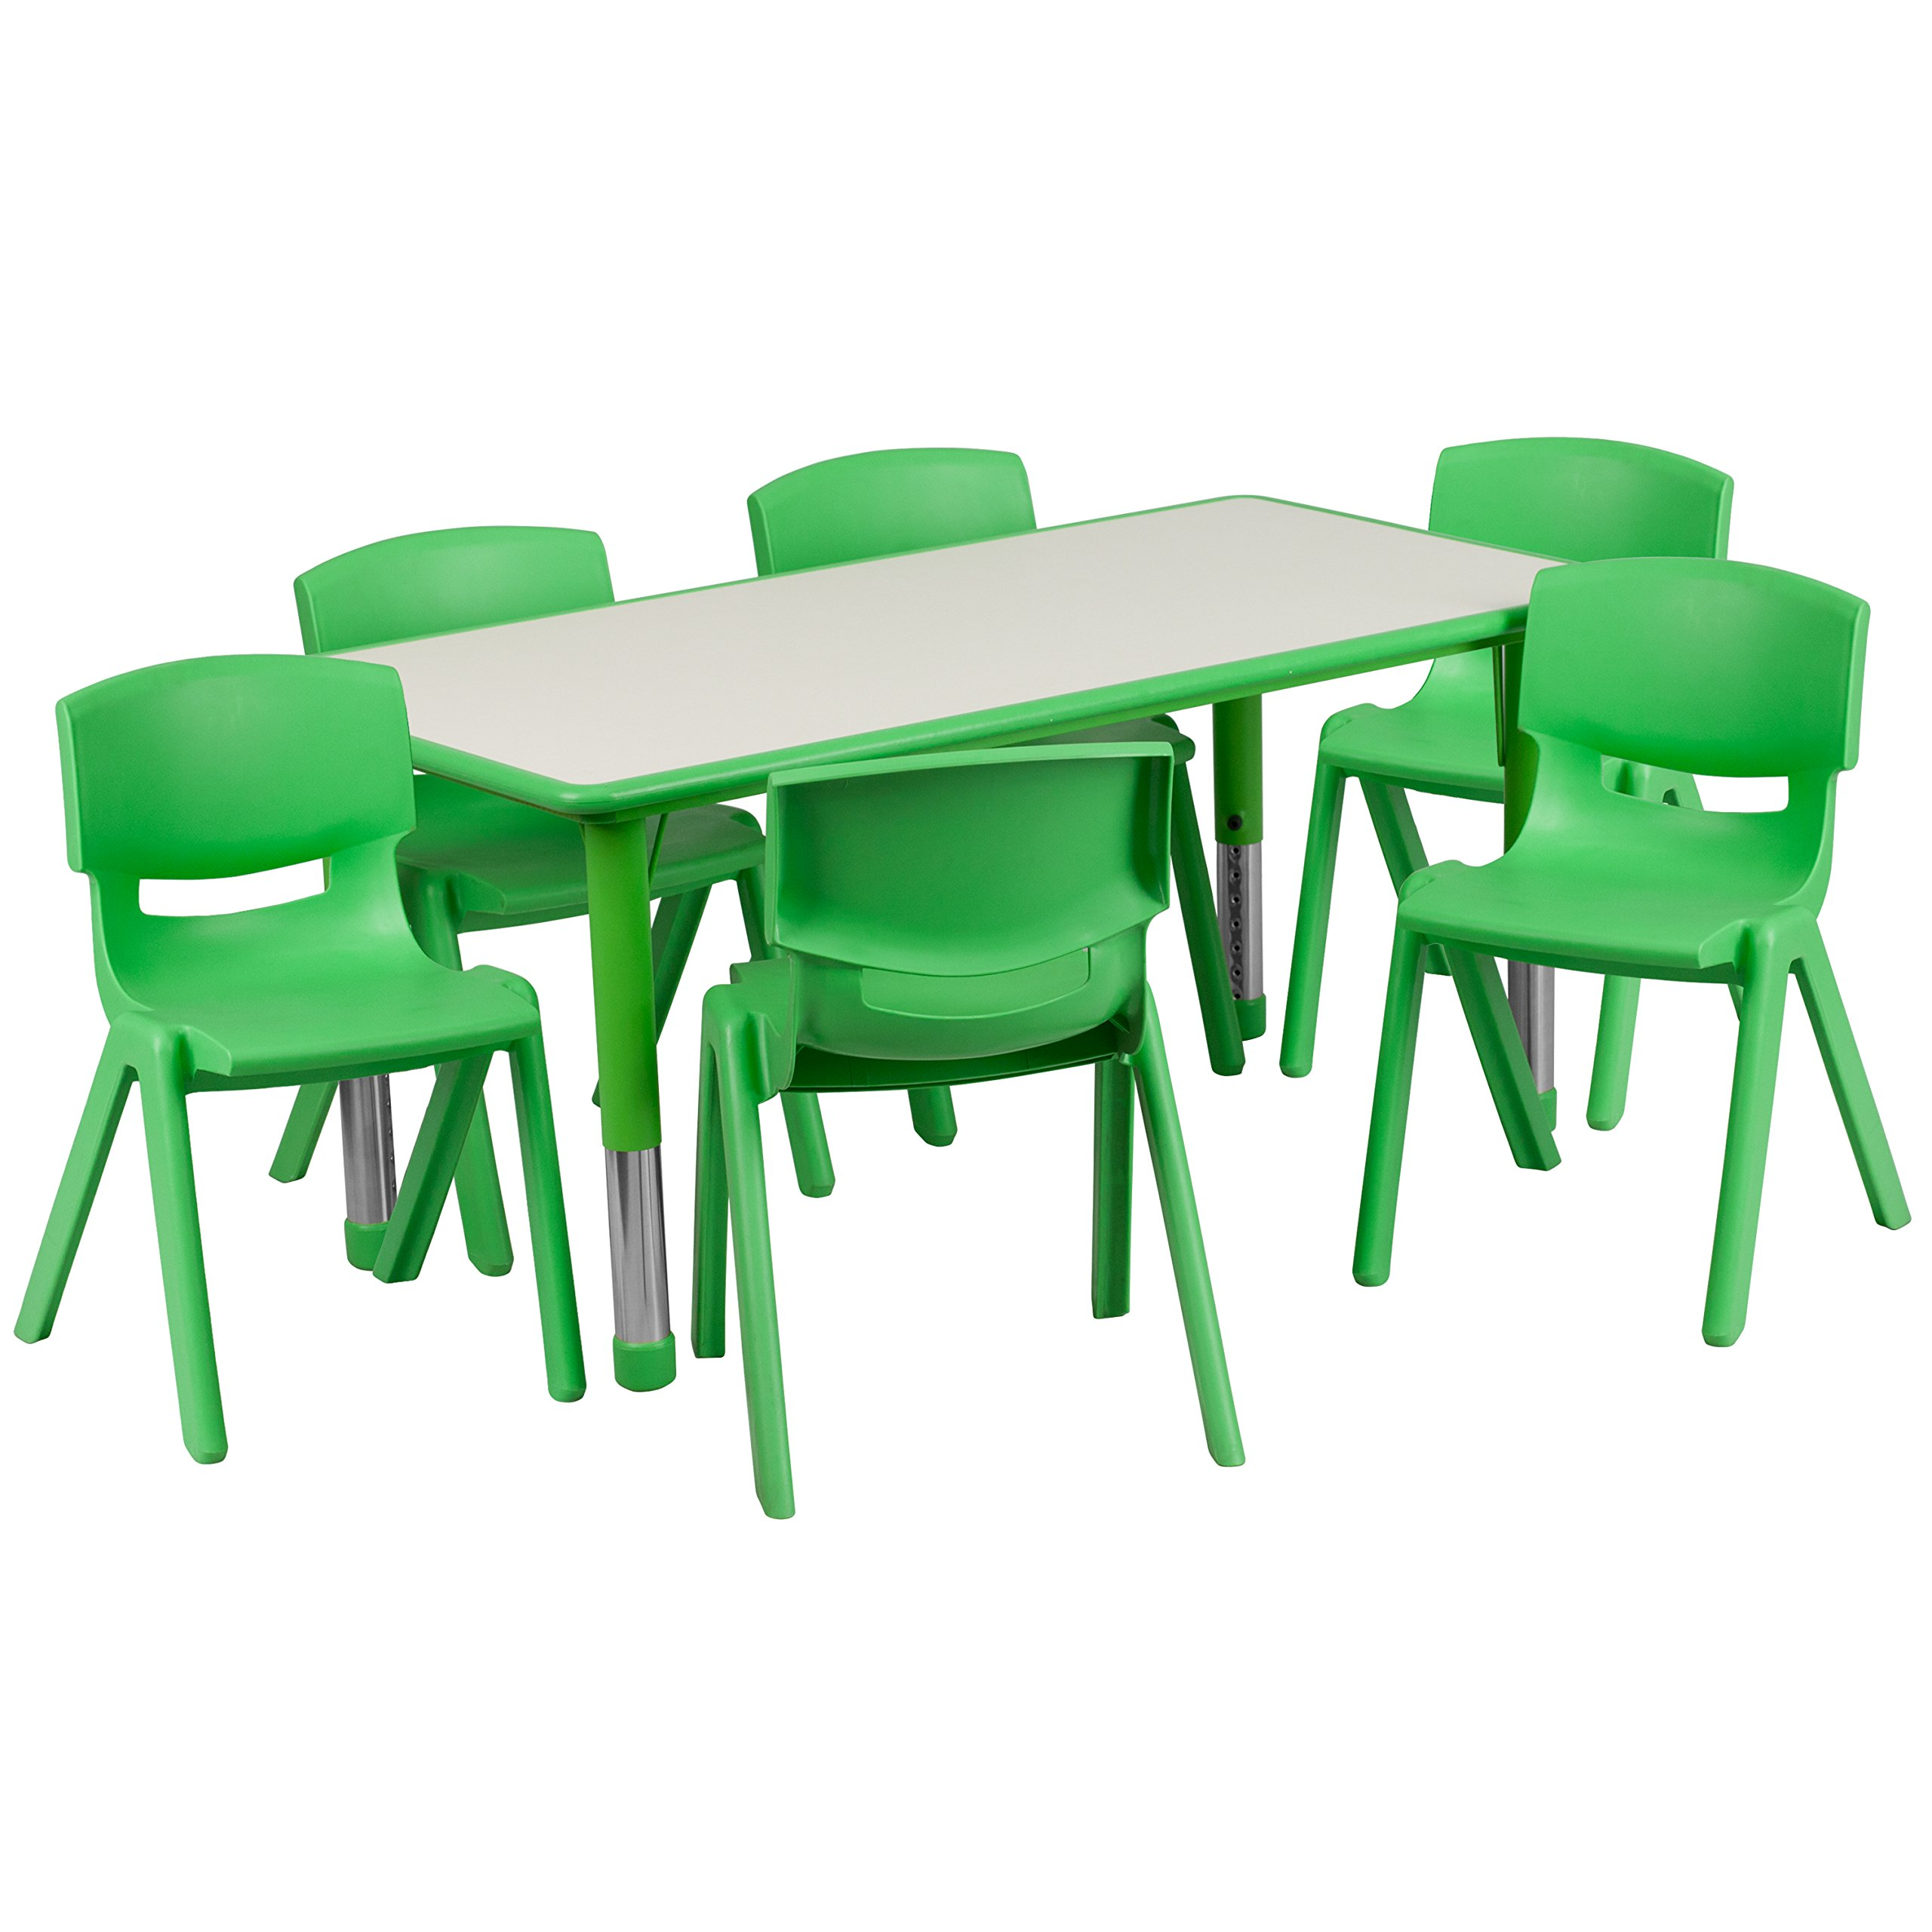 Flash Furniture 23.625''W x 47.25''L Rectangular Green Plastic Height Adjustable Activity Table Set with 6 Chairs by Flash Furniture